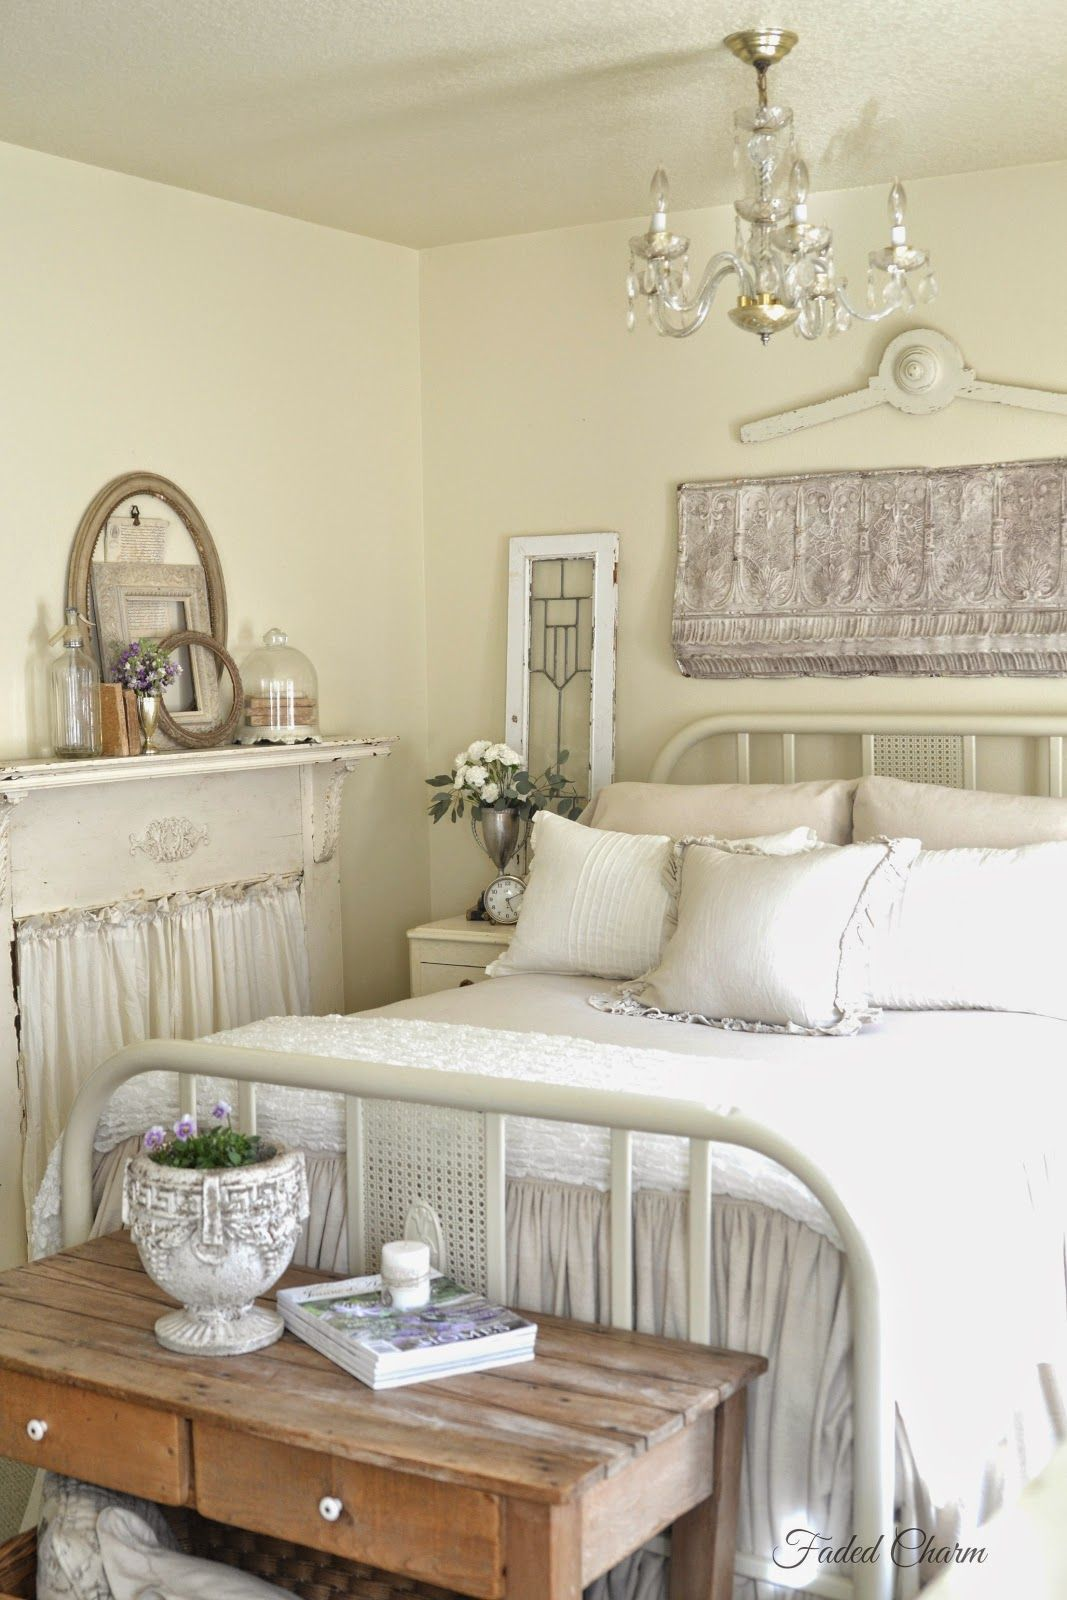 Cottage Bedroom Decorating on cottage front yard ideas, cottage bedroom storage, cottage bedroom blinds, cottage bathroom, cottage design, cottage bedroom colors, cottage chic bedrooms, dining room decorating, cottage bedroom themes, cottage bedroom windows, cottage bedroom curtains, cottage master bedroom, cottage comforters, cottage bedroom wallpaper, cottage room, cottage bedroom accessories, cottage bedroom style, cottage interior,